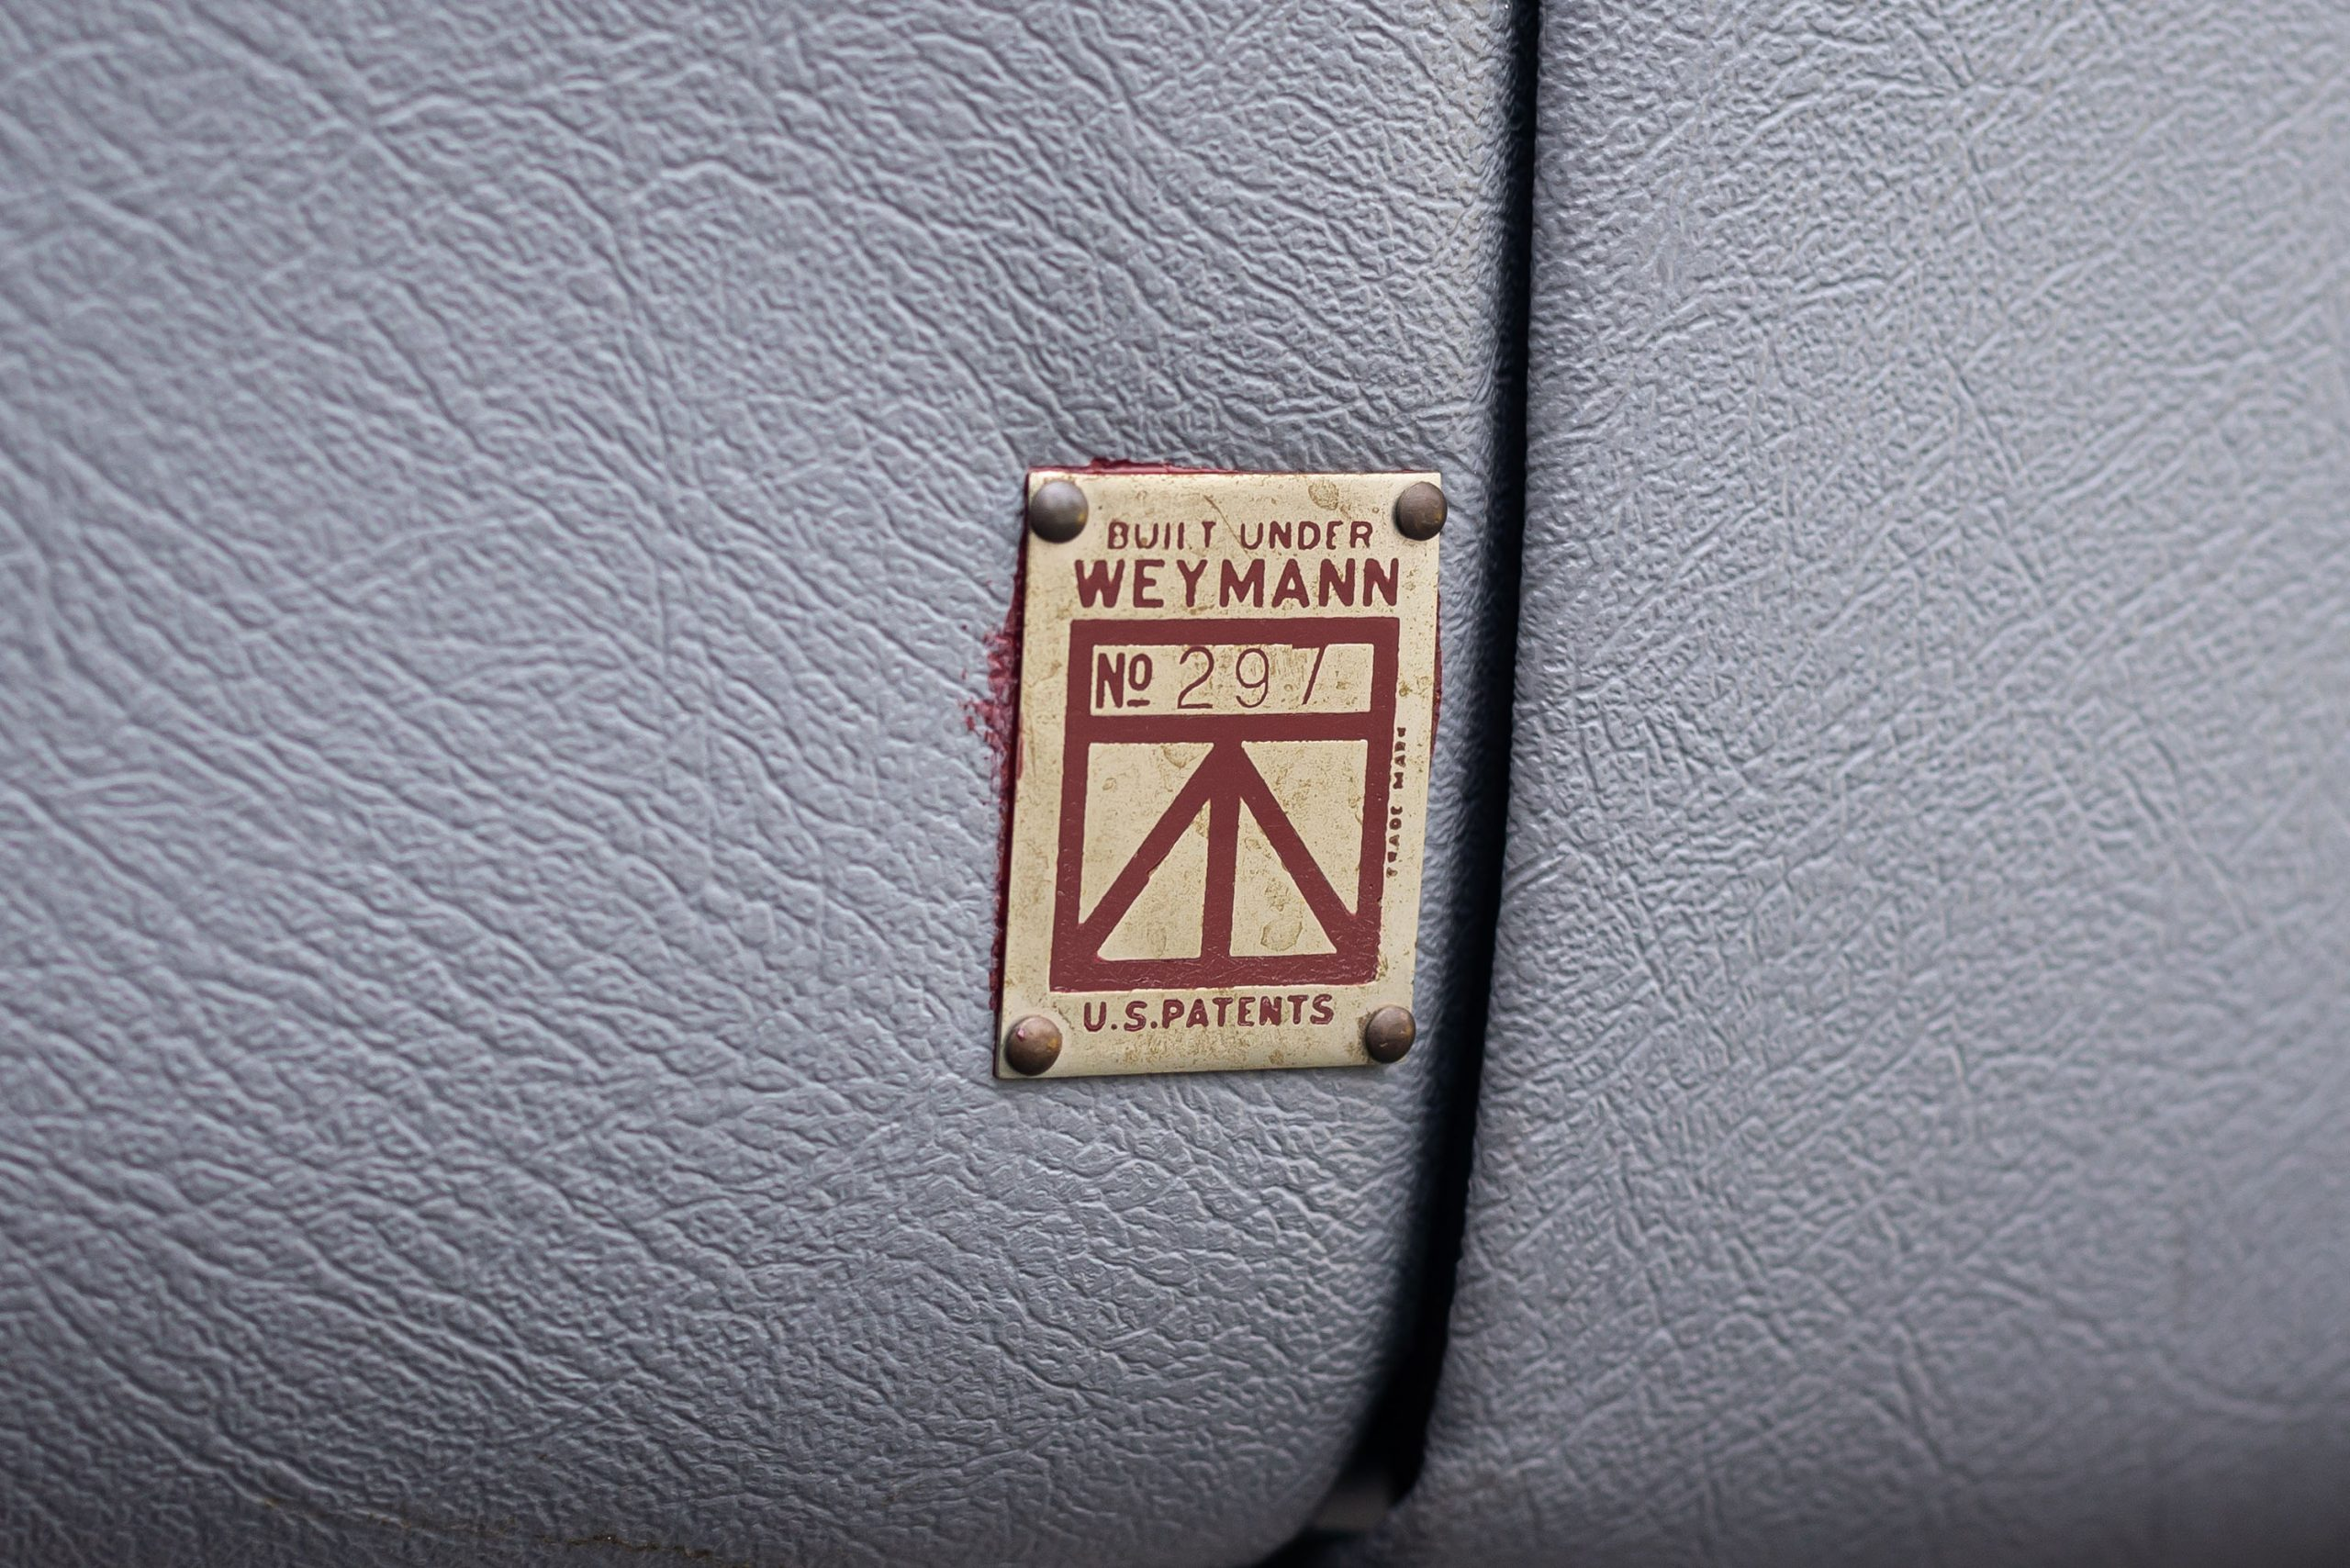 1930 Stutz Model MB Monte Carlo by Weymann plaque